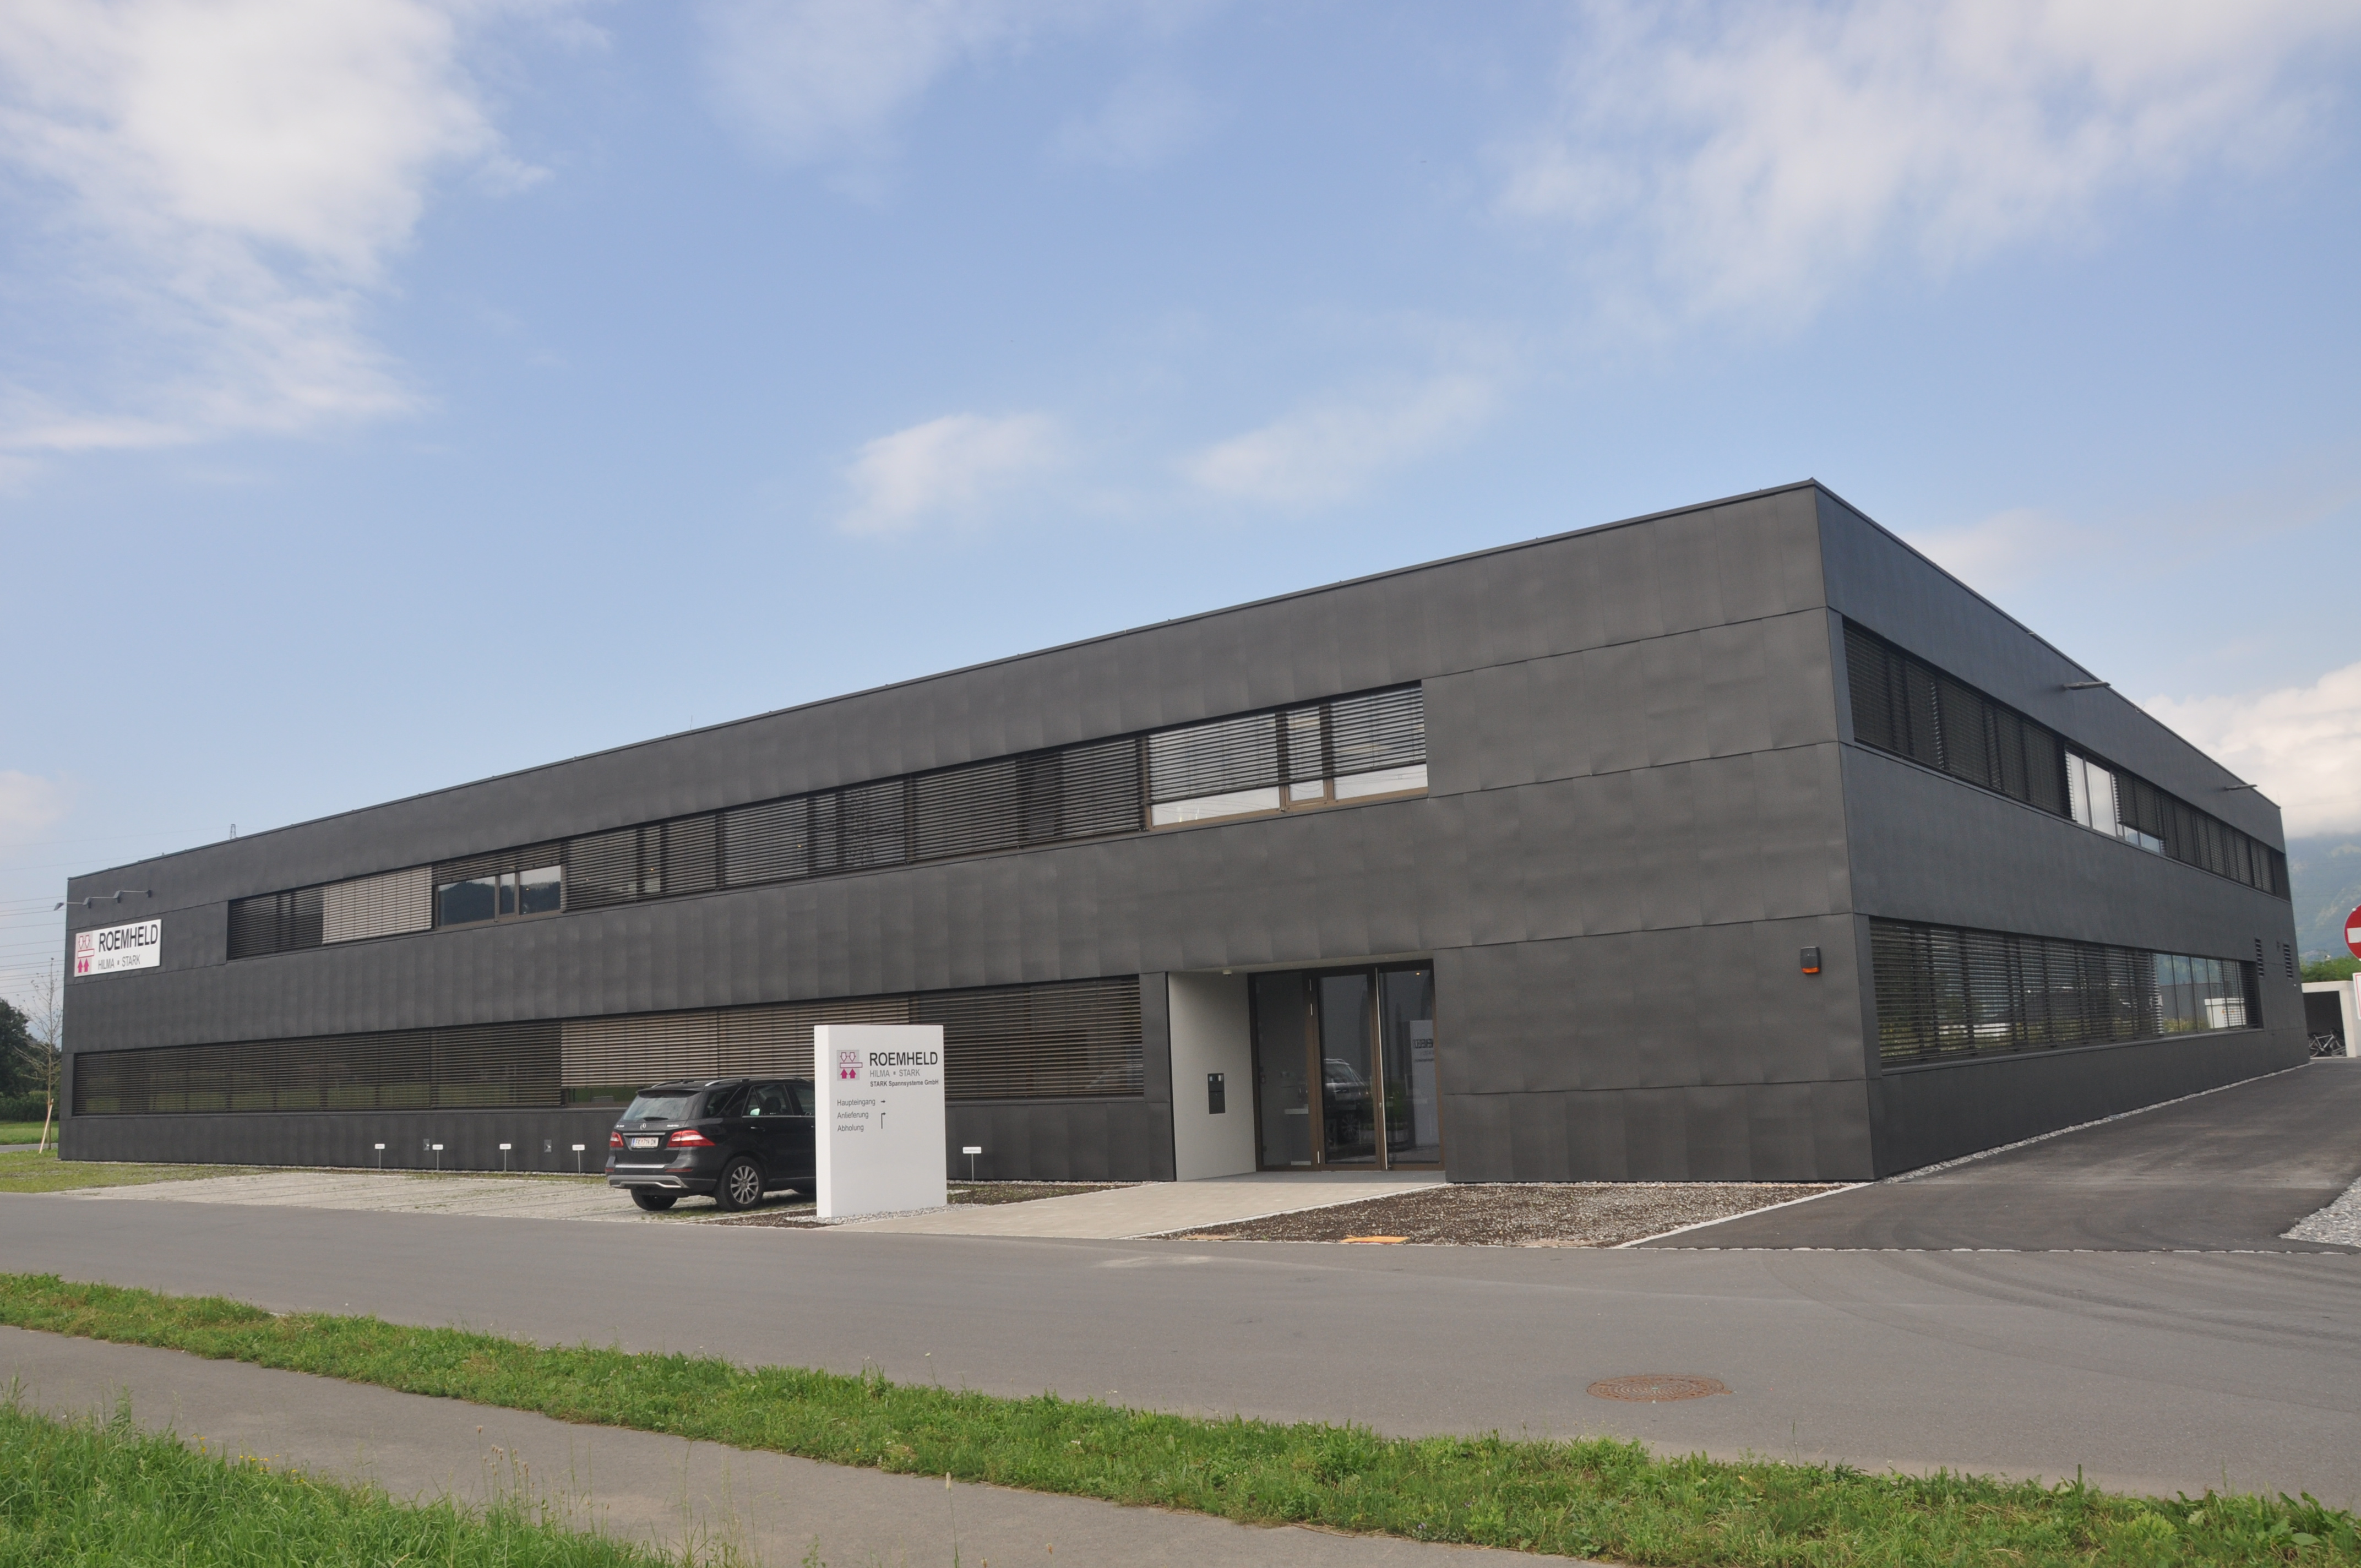 Roemheld Starkmanufacturing